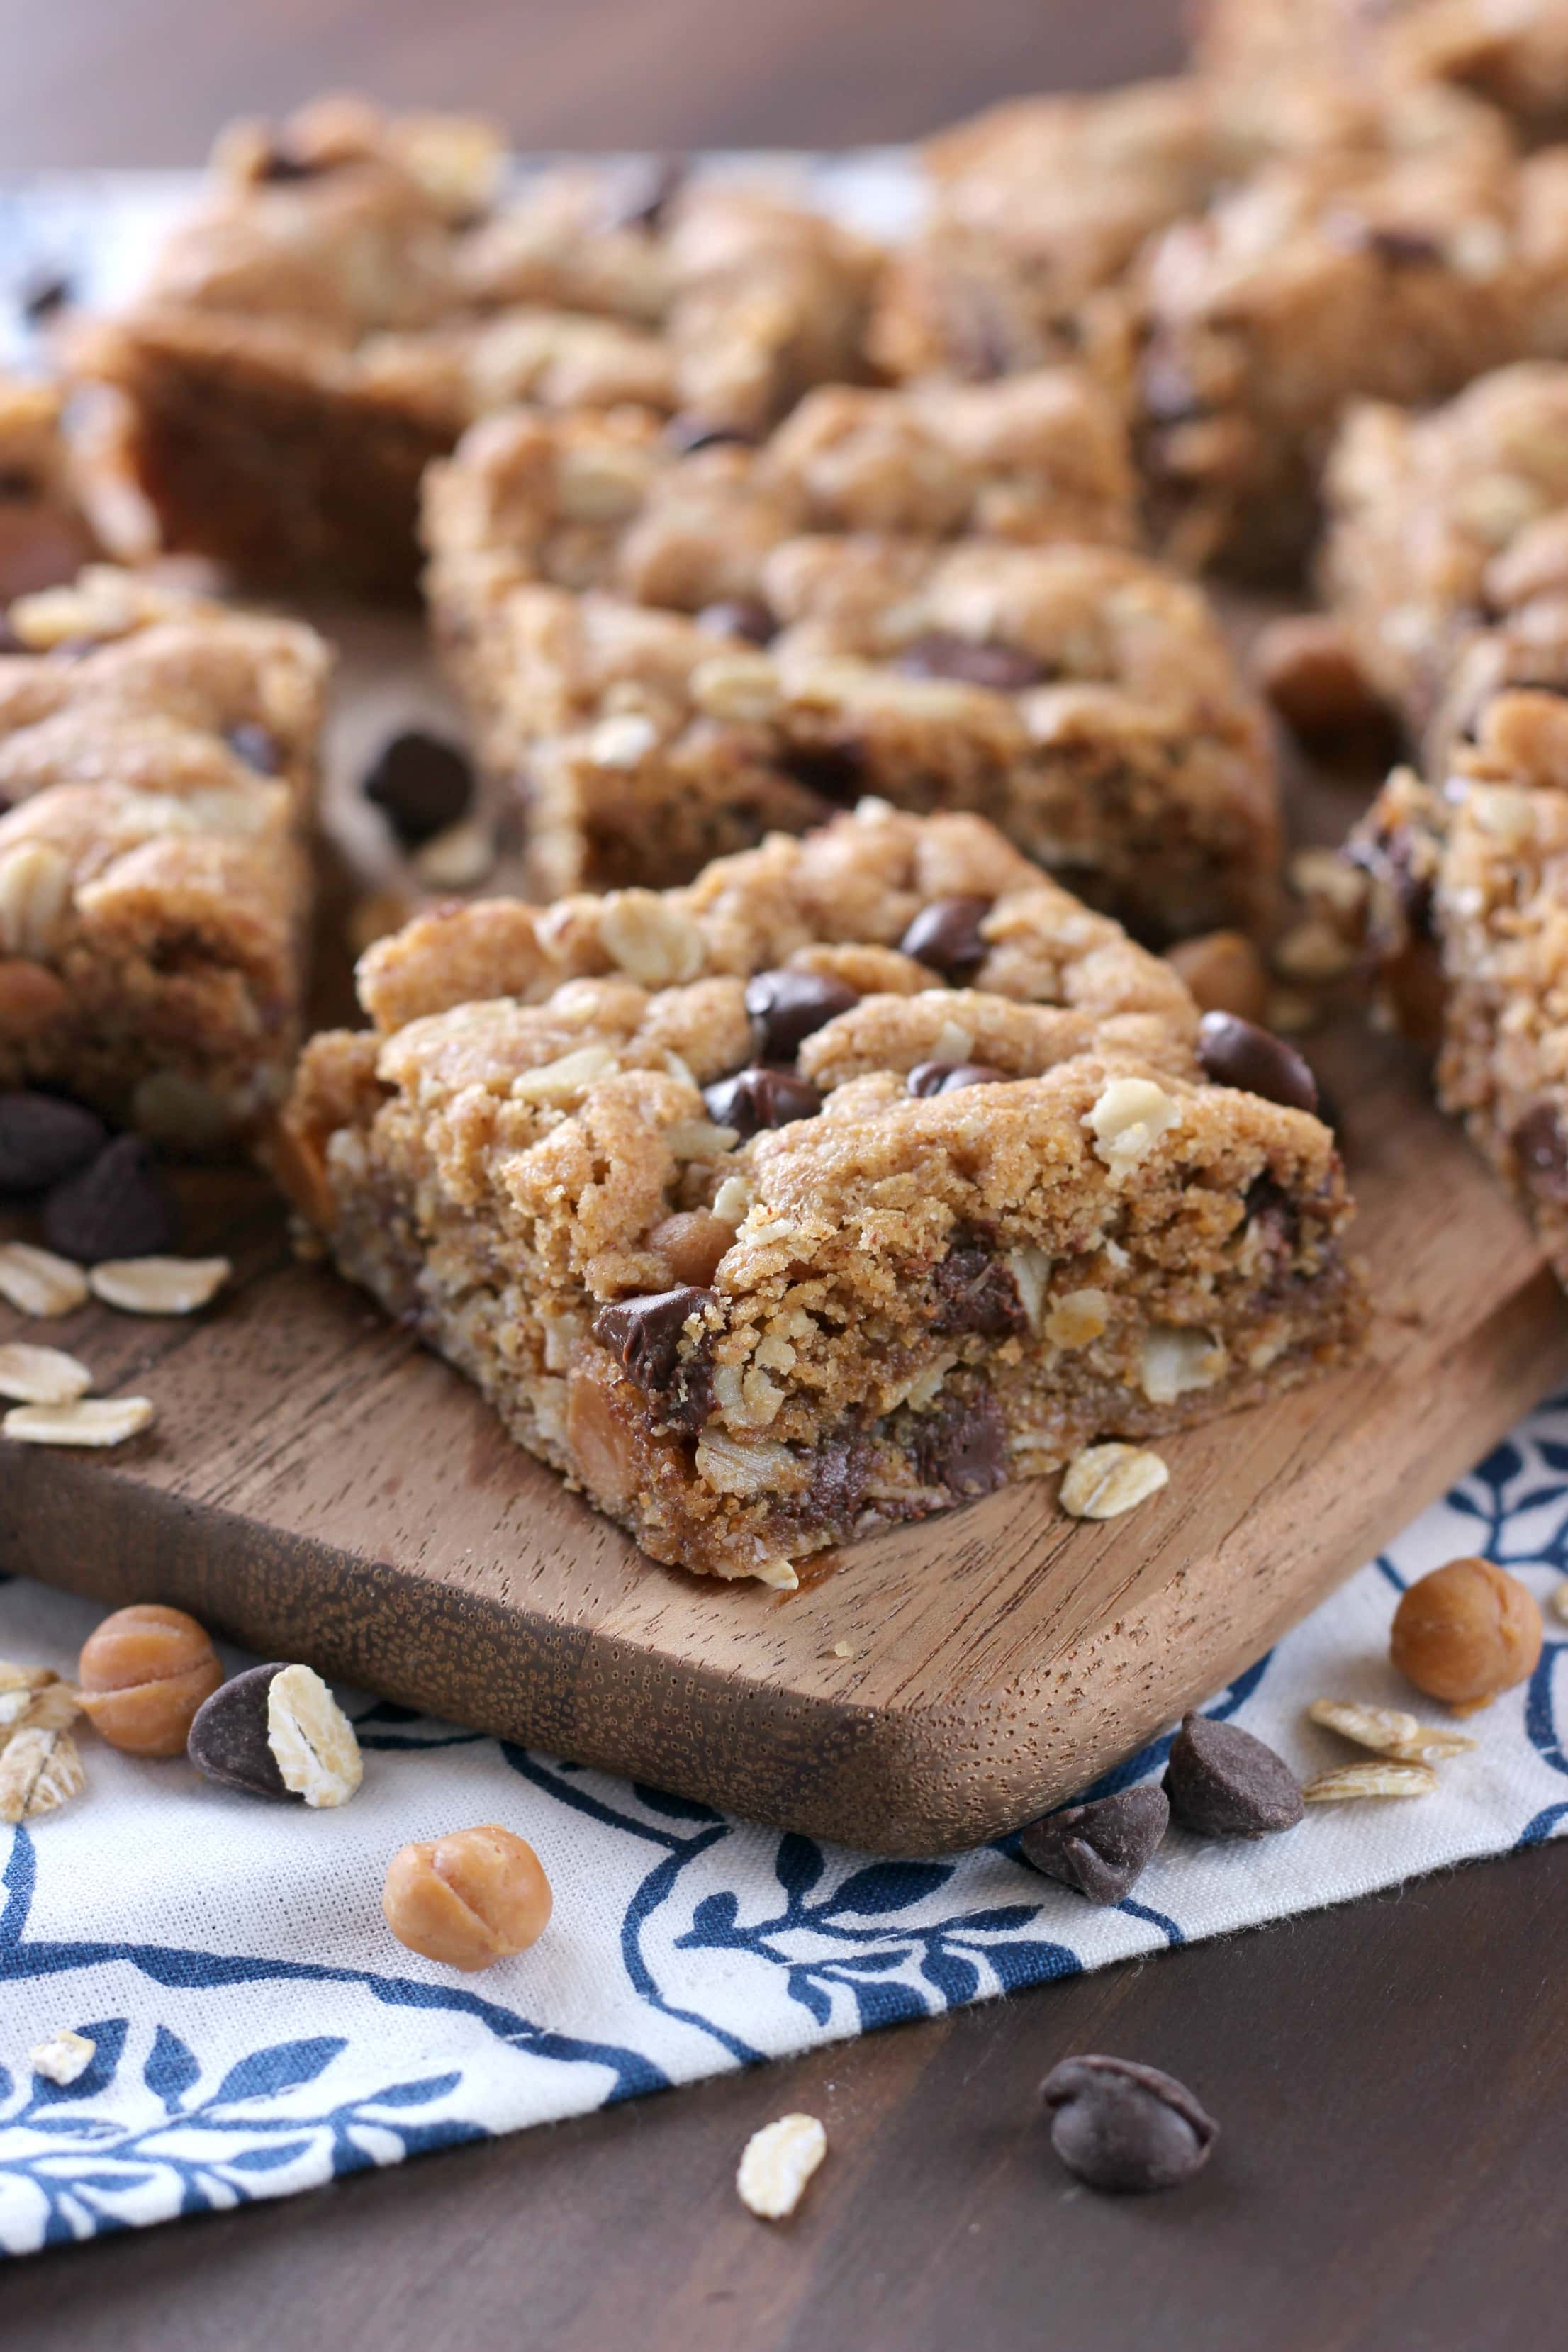 Chocolate Caramel Almond Butter Oatmeal Bars Recipe from A Kitchen Addiction